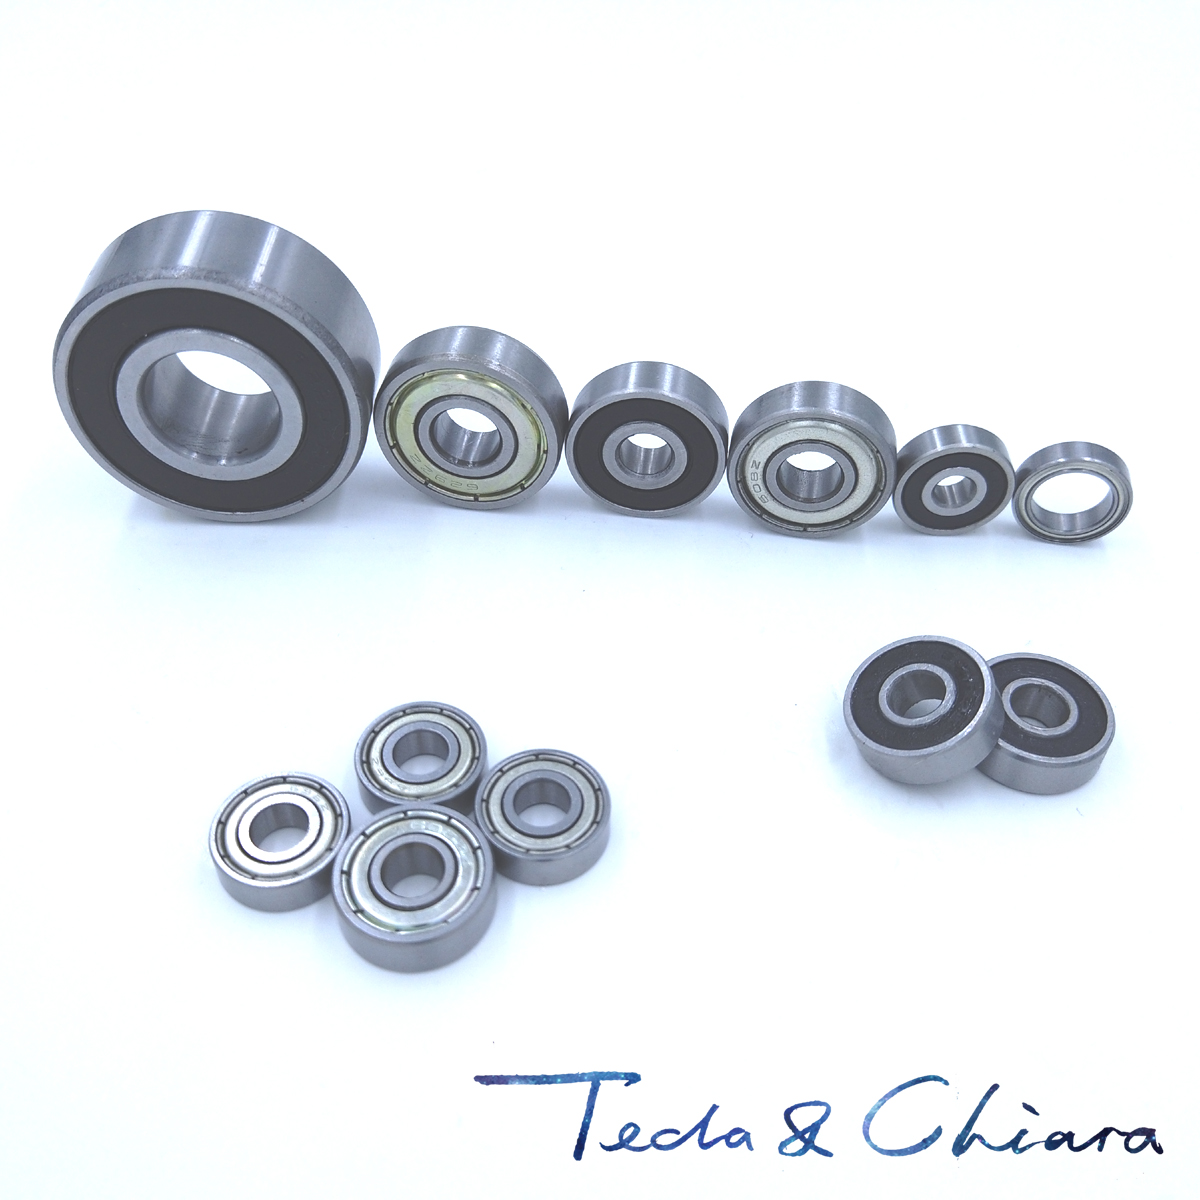 628 628ZZ 628RS 628-2Z 628Z 628-2RS ZZ RS RZ 2RZ Deep Groove Ball Bearings 8 x 24 x 8mm image